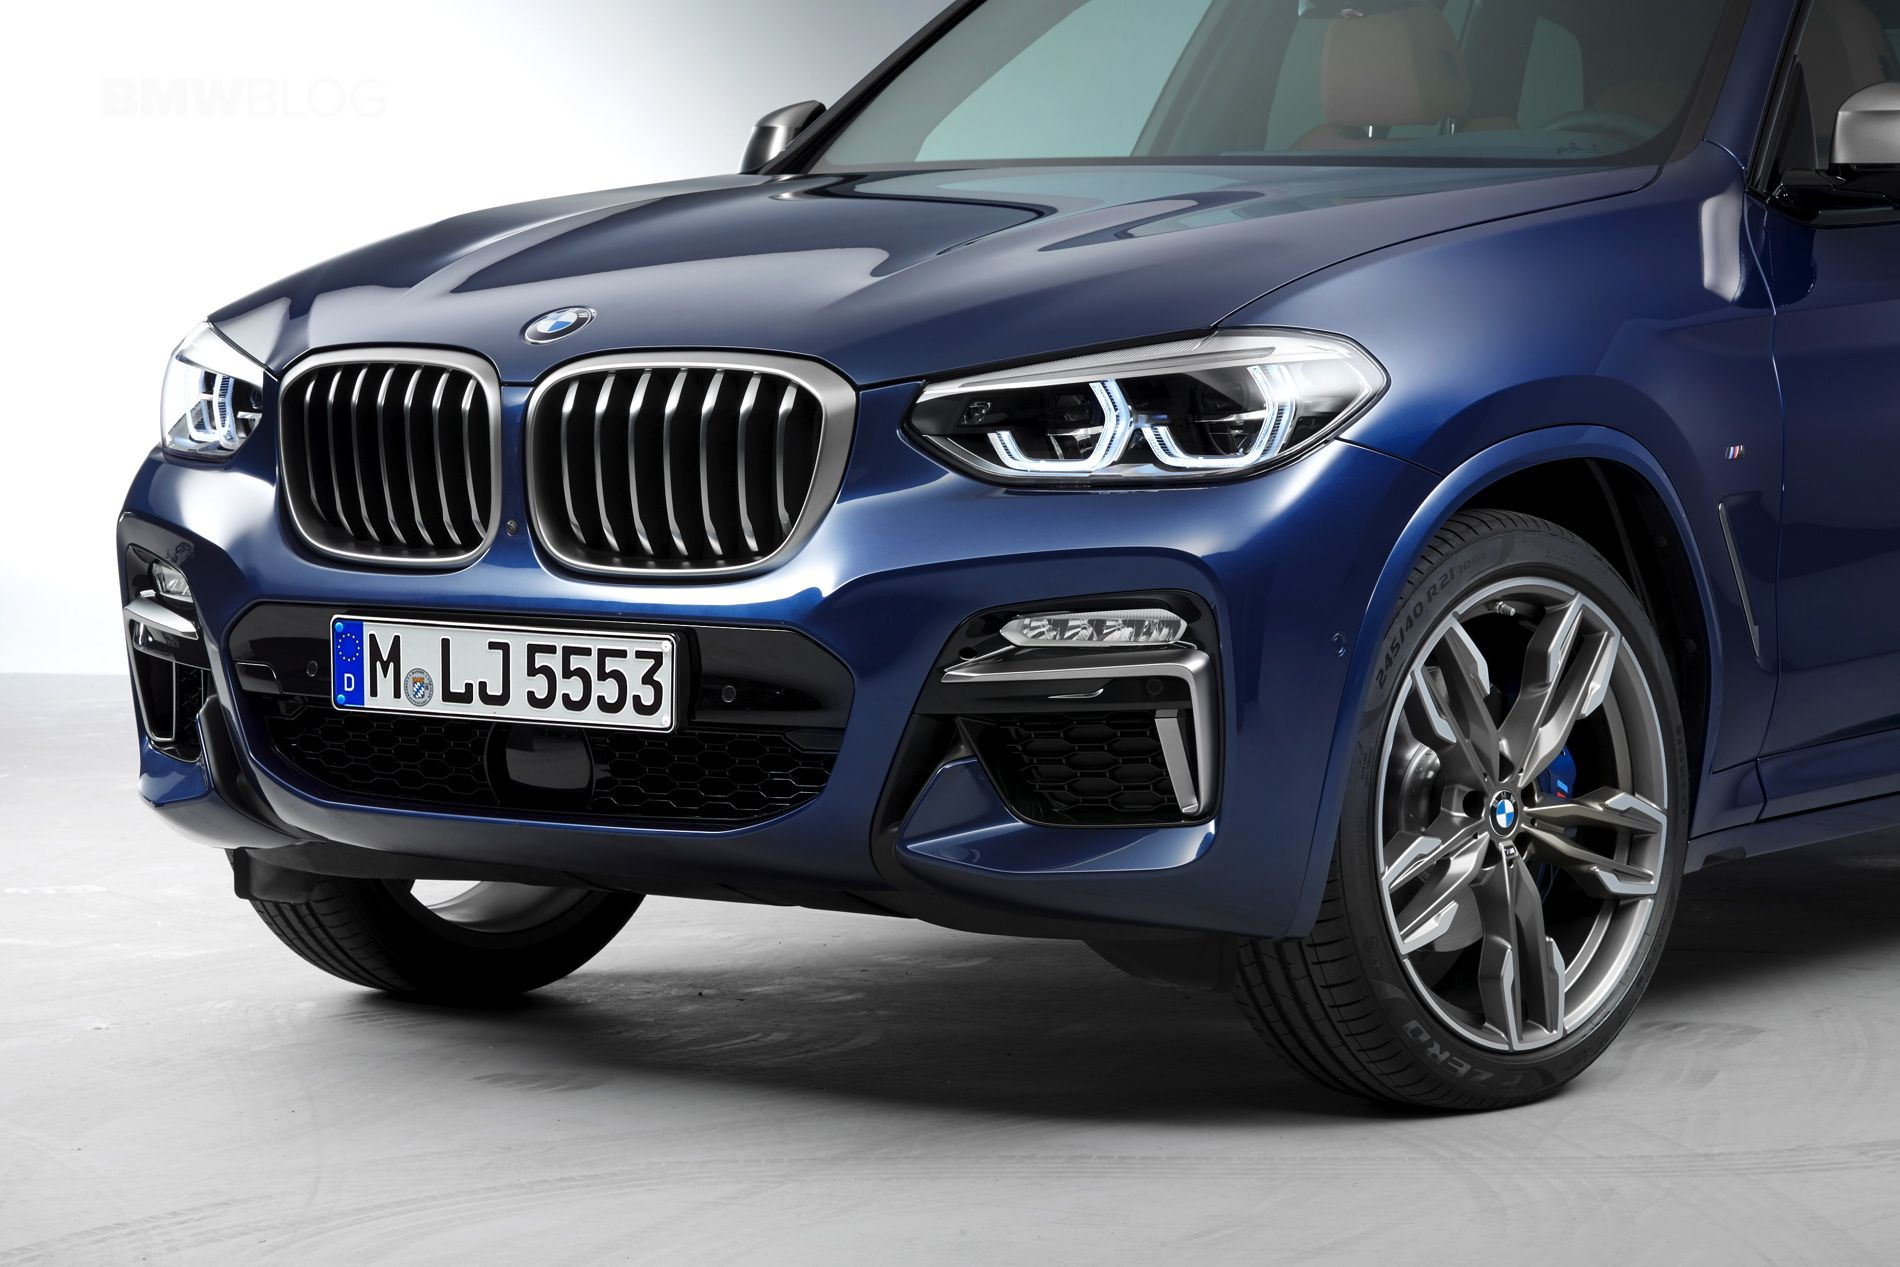 2018 bmw x3 price starts at 47 000 euros for x3 xdrive20d http